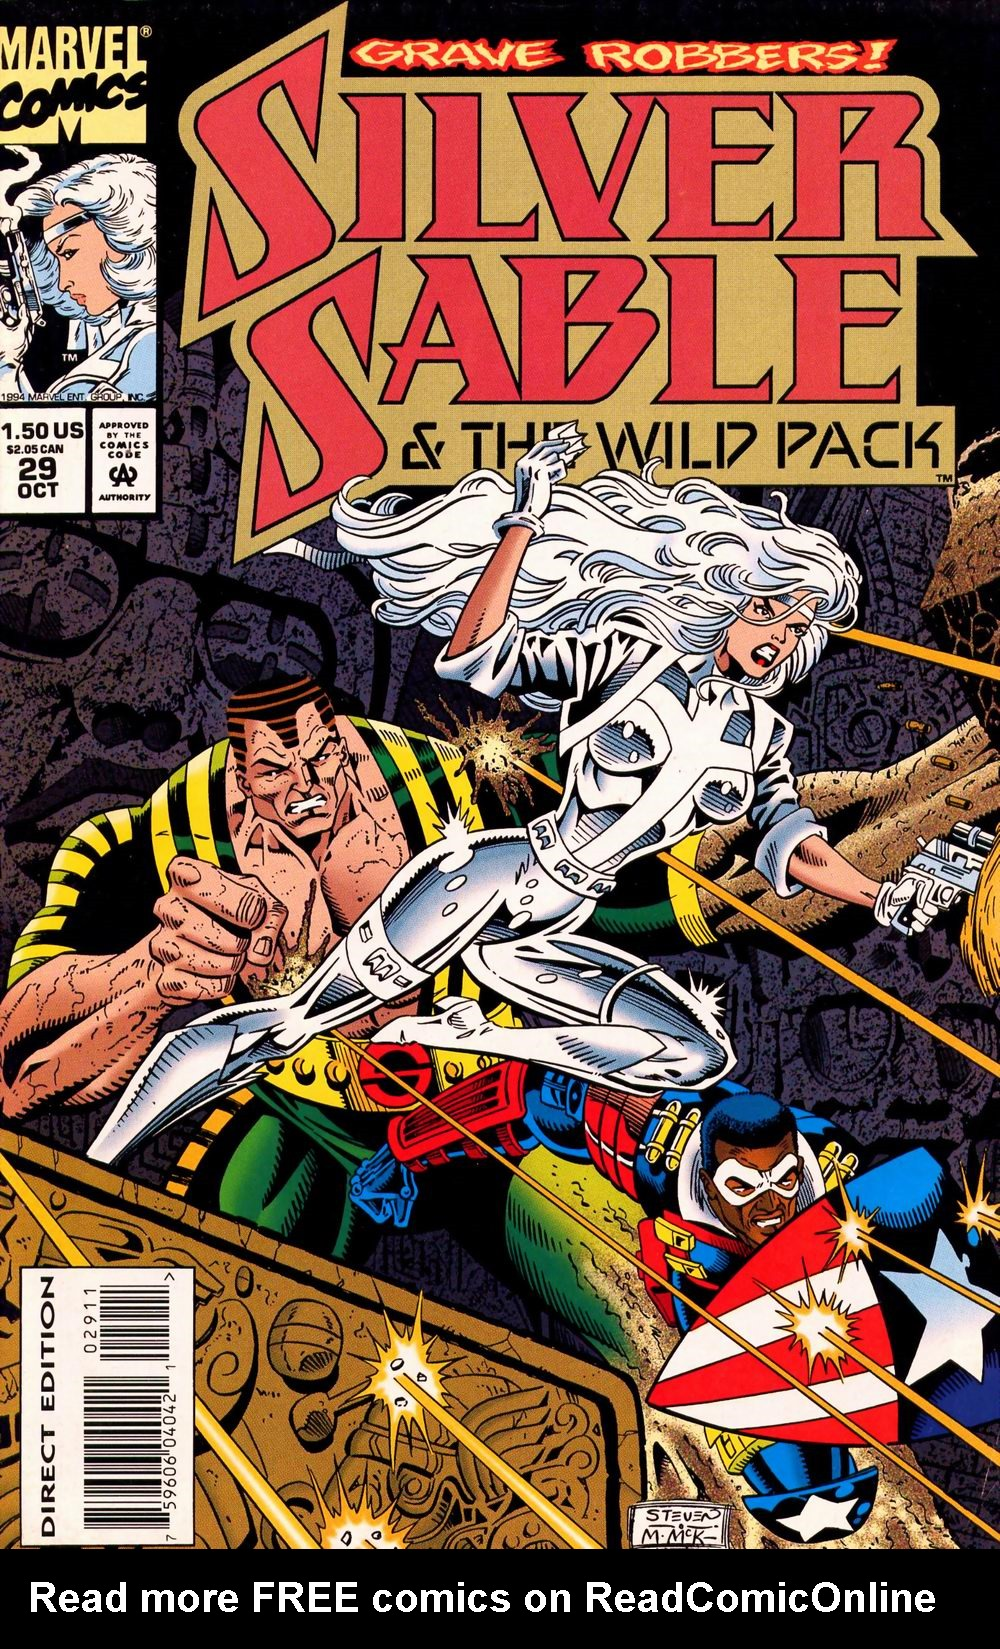 Read online Silver Sable and the Wild Pack comic -  Issue #29 - 1